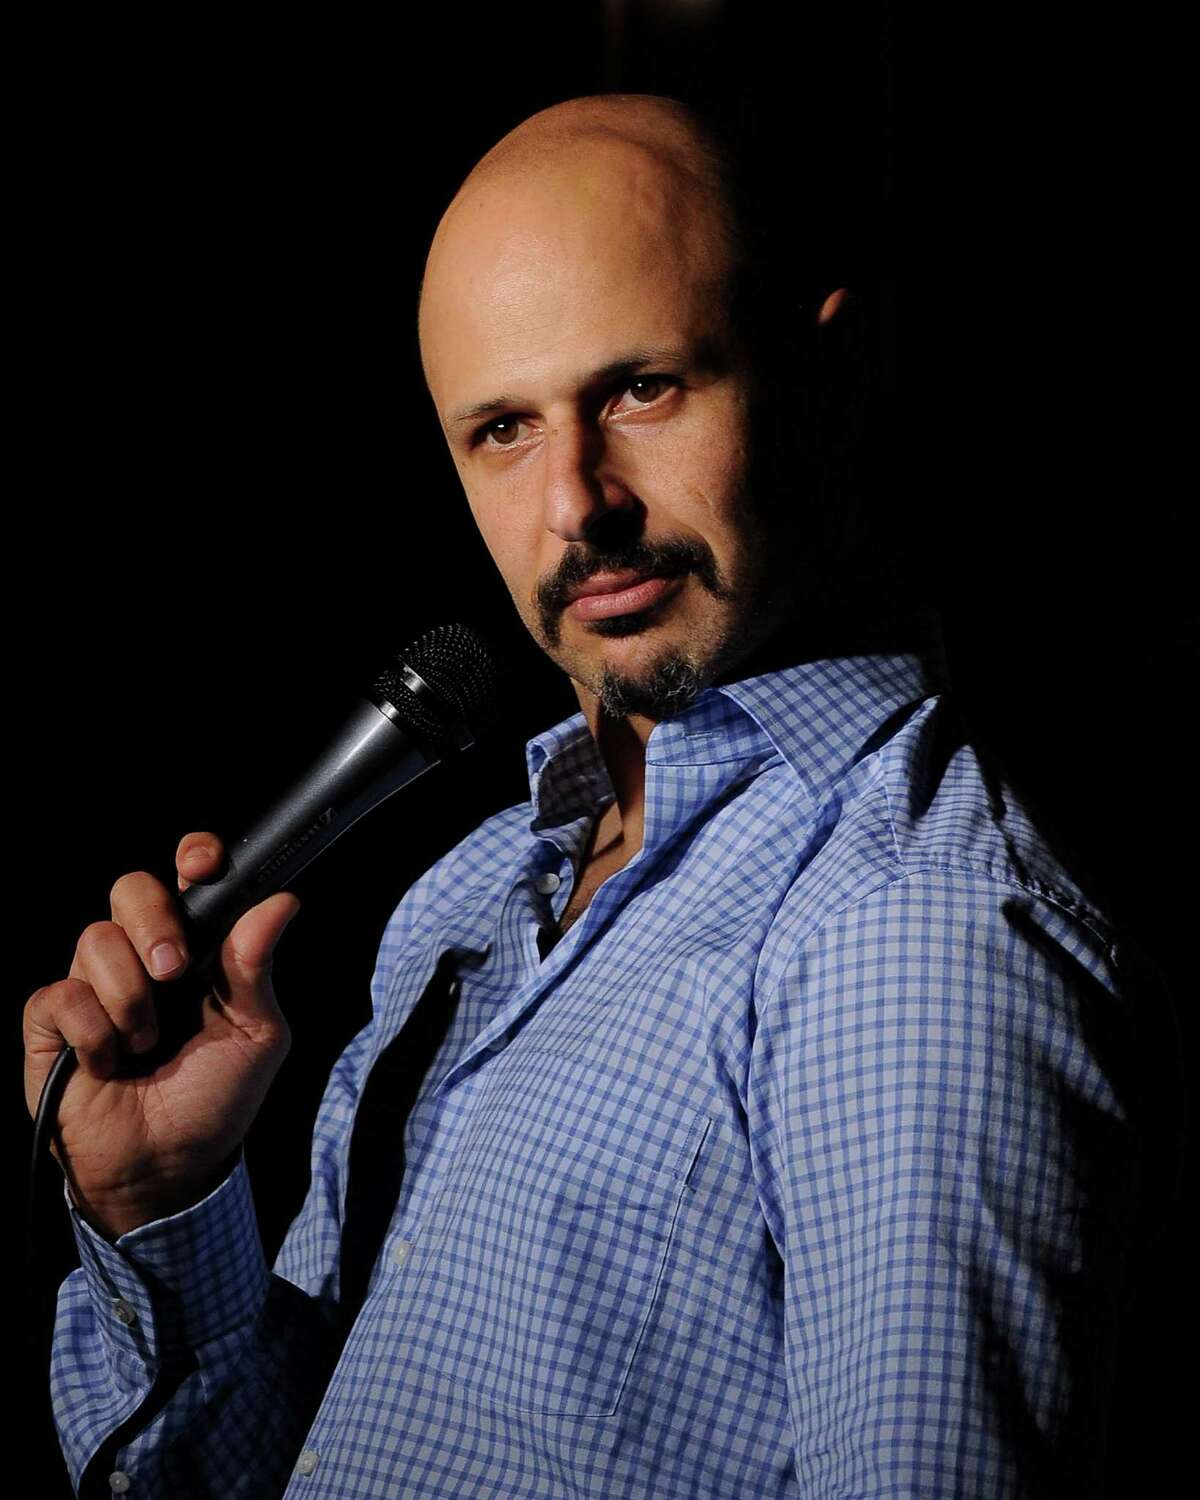 You might recognize Maz Jobrani  from his occasional stints as a guest on NPR's 'Wait Wait...Don't Tell Me'. See him show off his comedic skill from April 17 to 19 at Comix at Foxwoods Resort Casino.